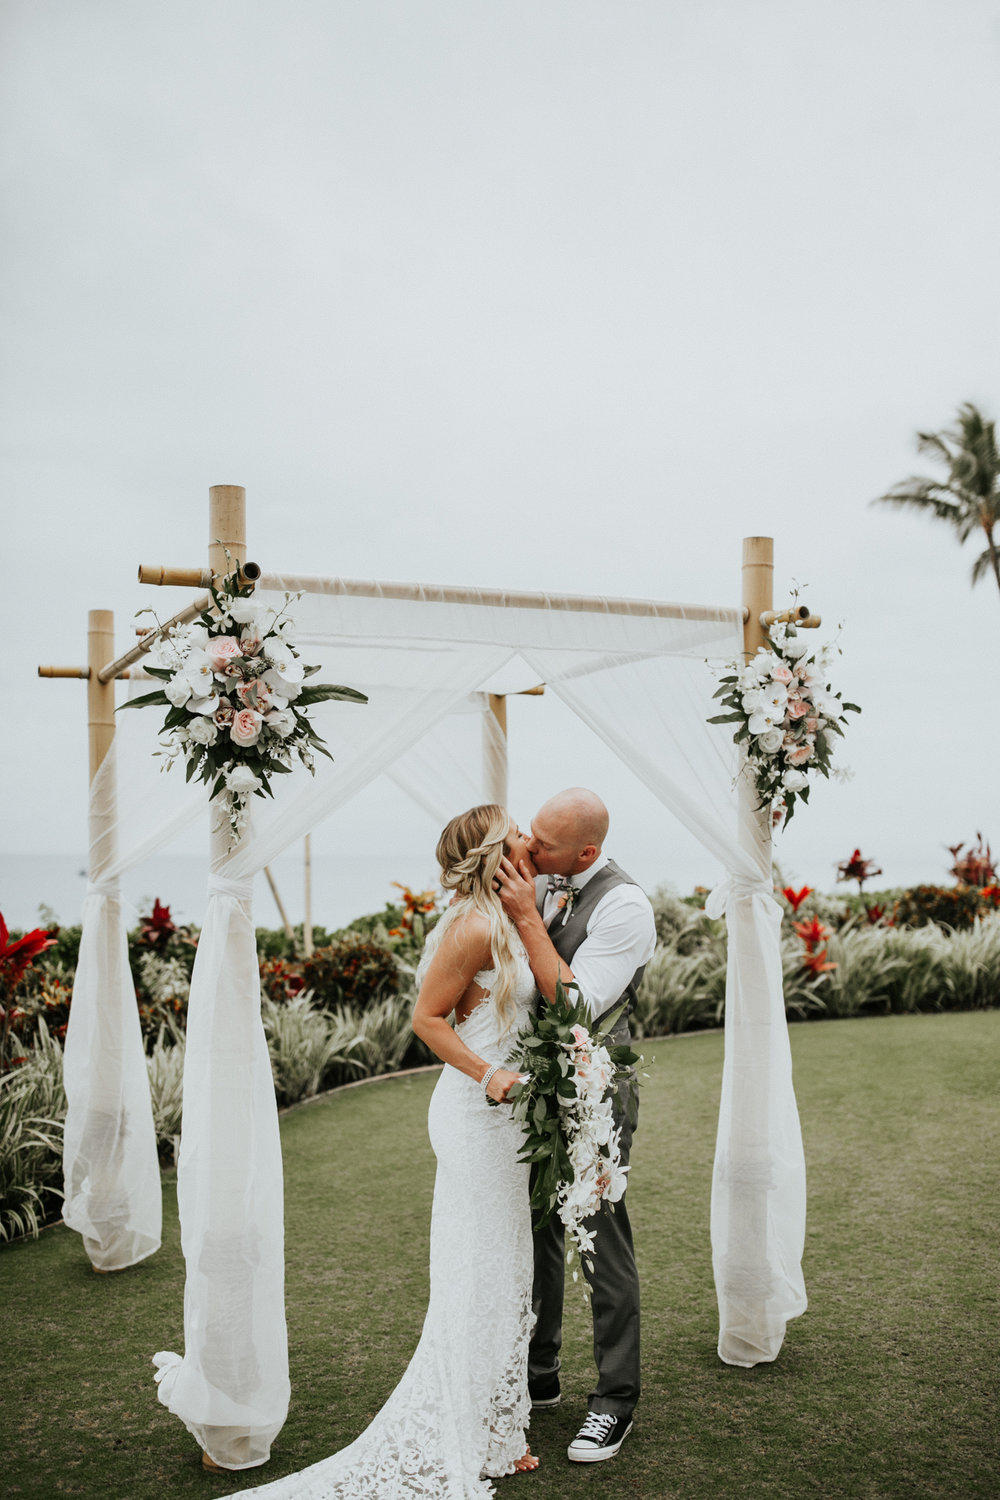 destination-wedding-photographer-hawaii-maui-elopement-59.jpg